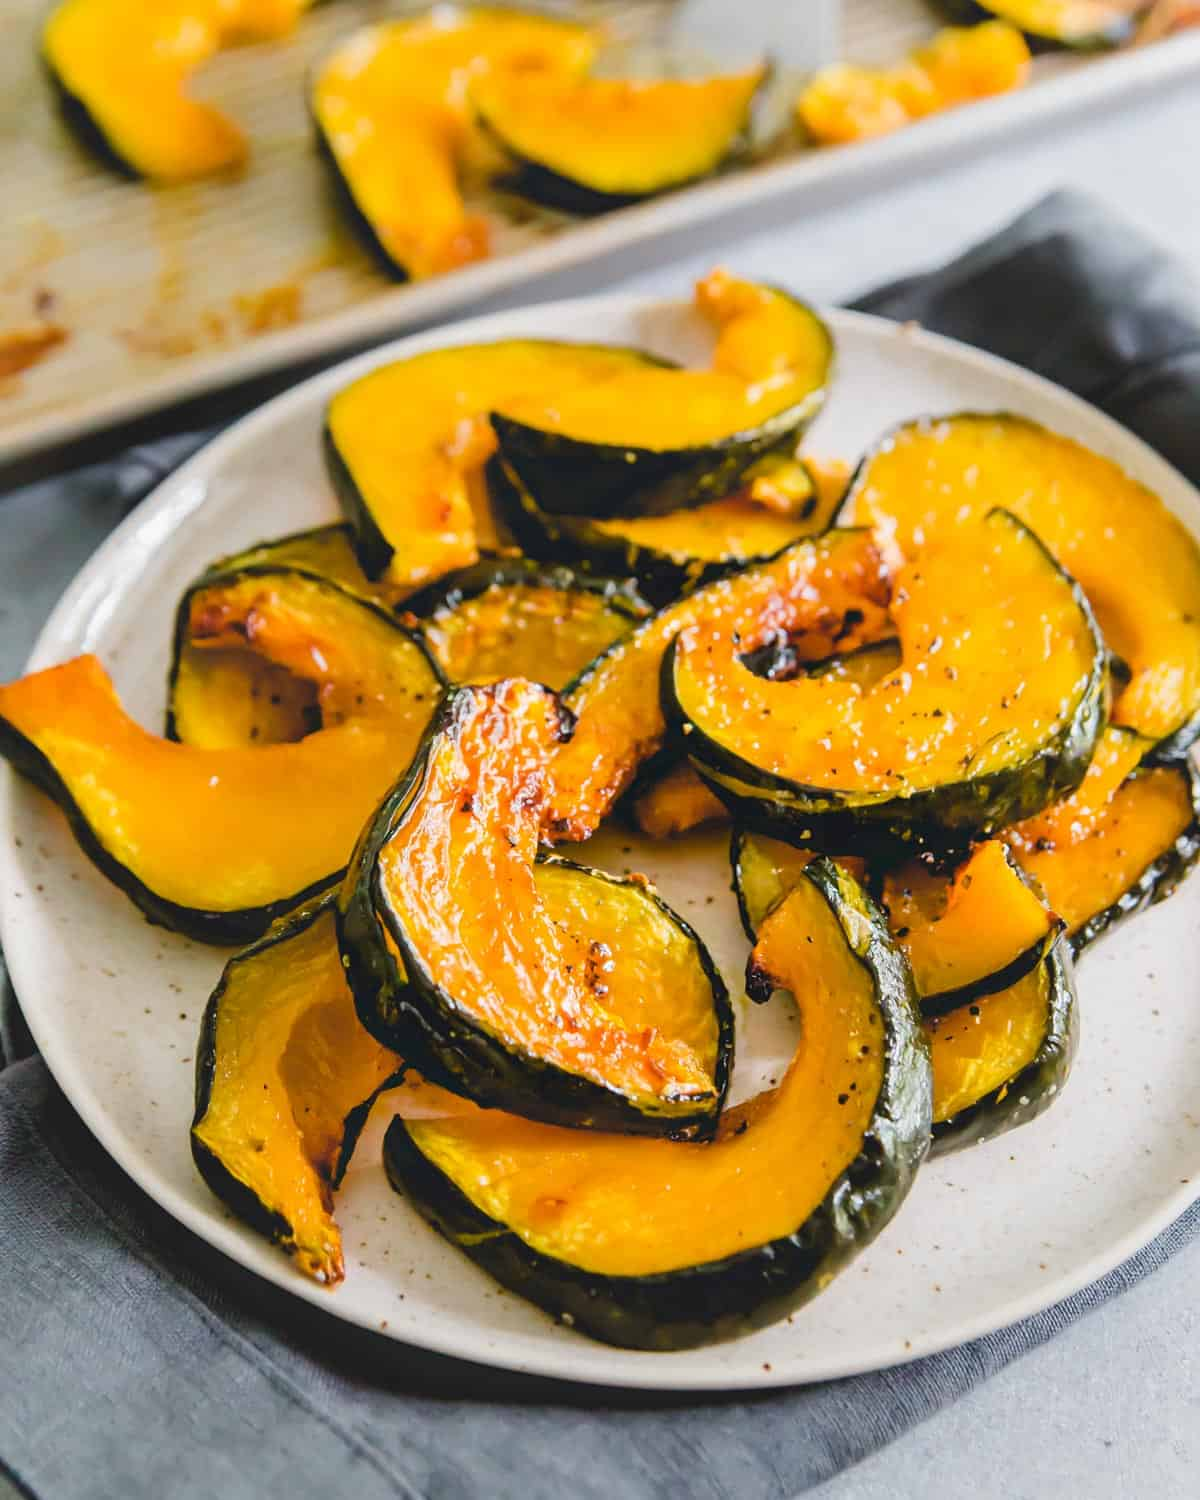 Buttercup squash is an often overlooked member of the fall squash family. Learn the best ways to cook it including this simple method for roasting in the oven until sweet and caramelized.